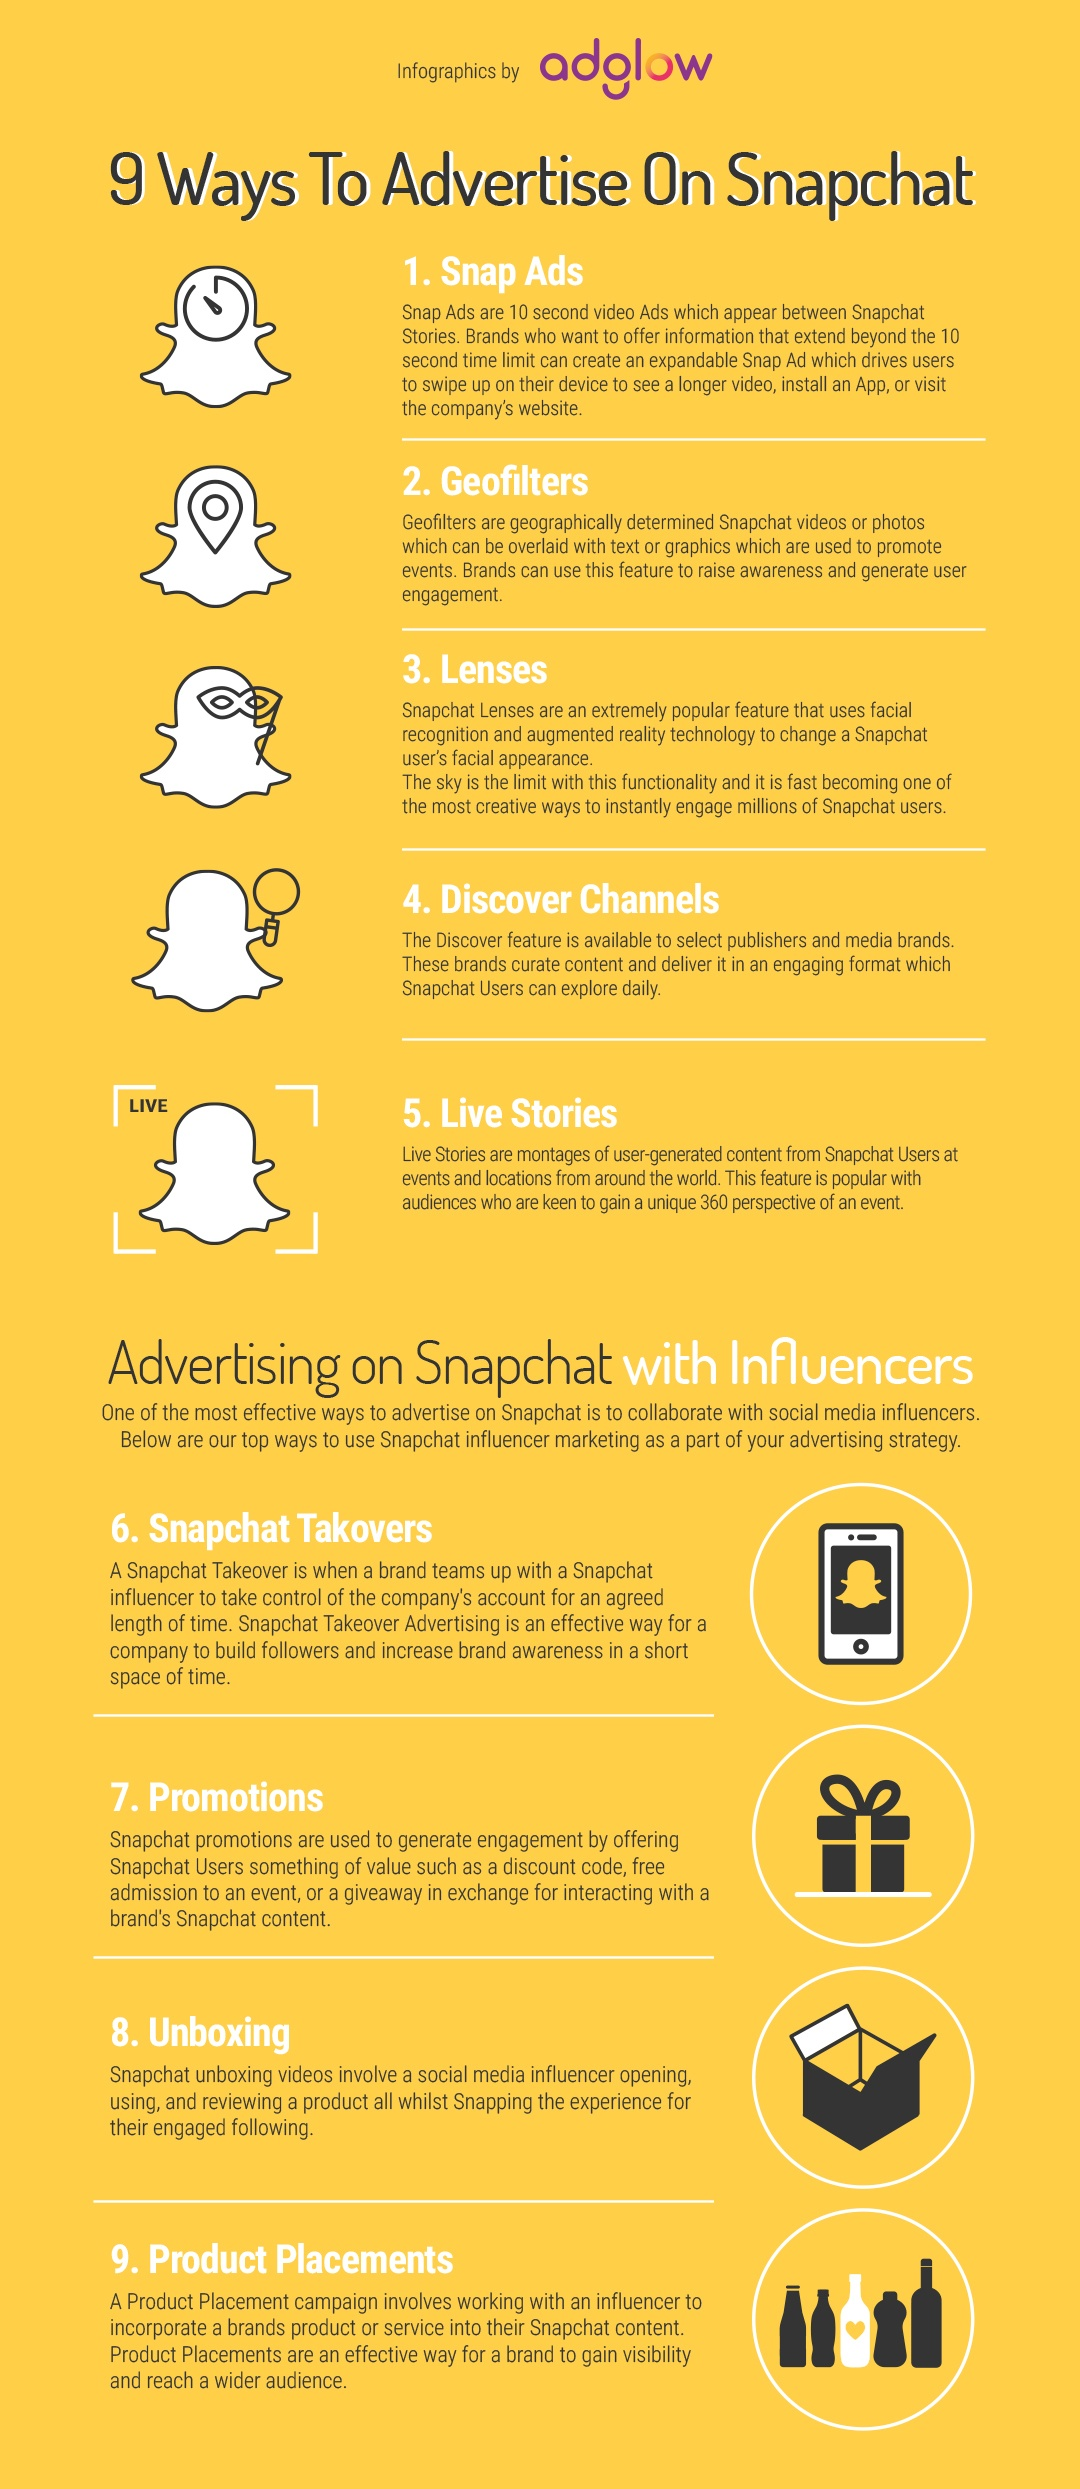 9 Ways To Advertise On Snapchat #infographic